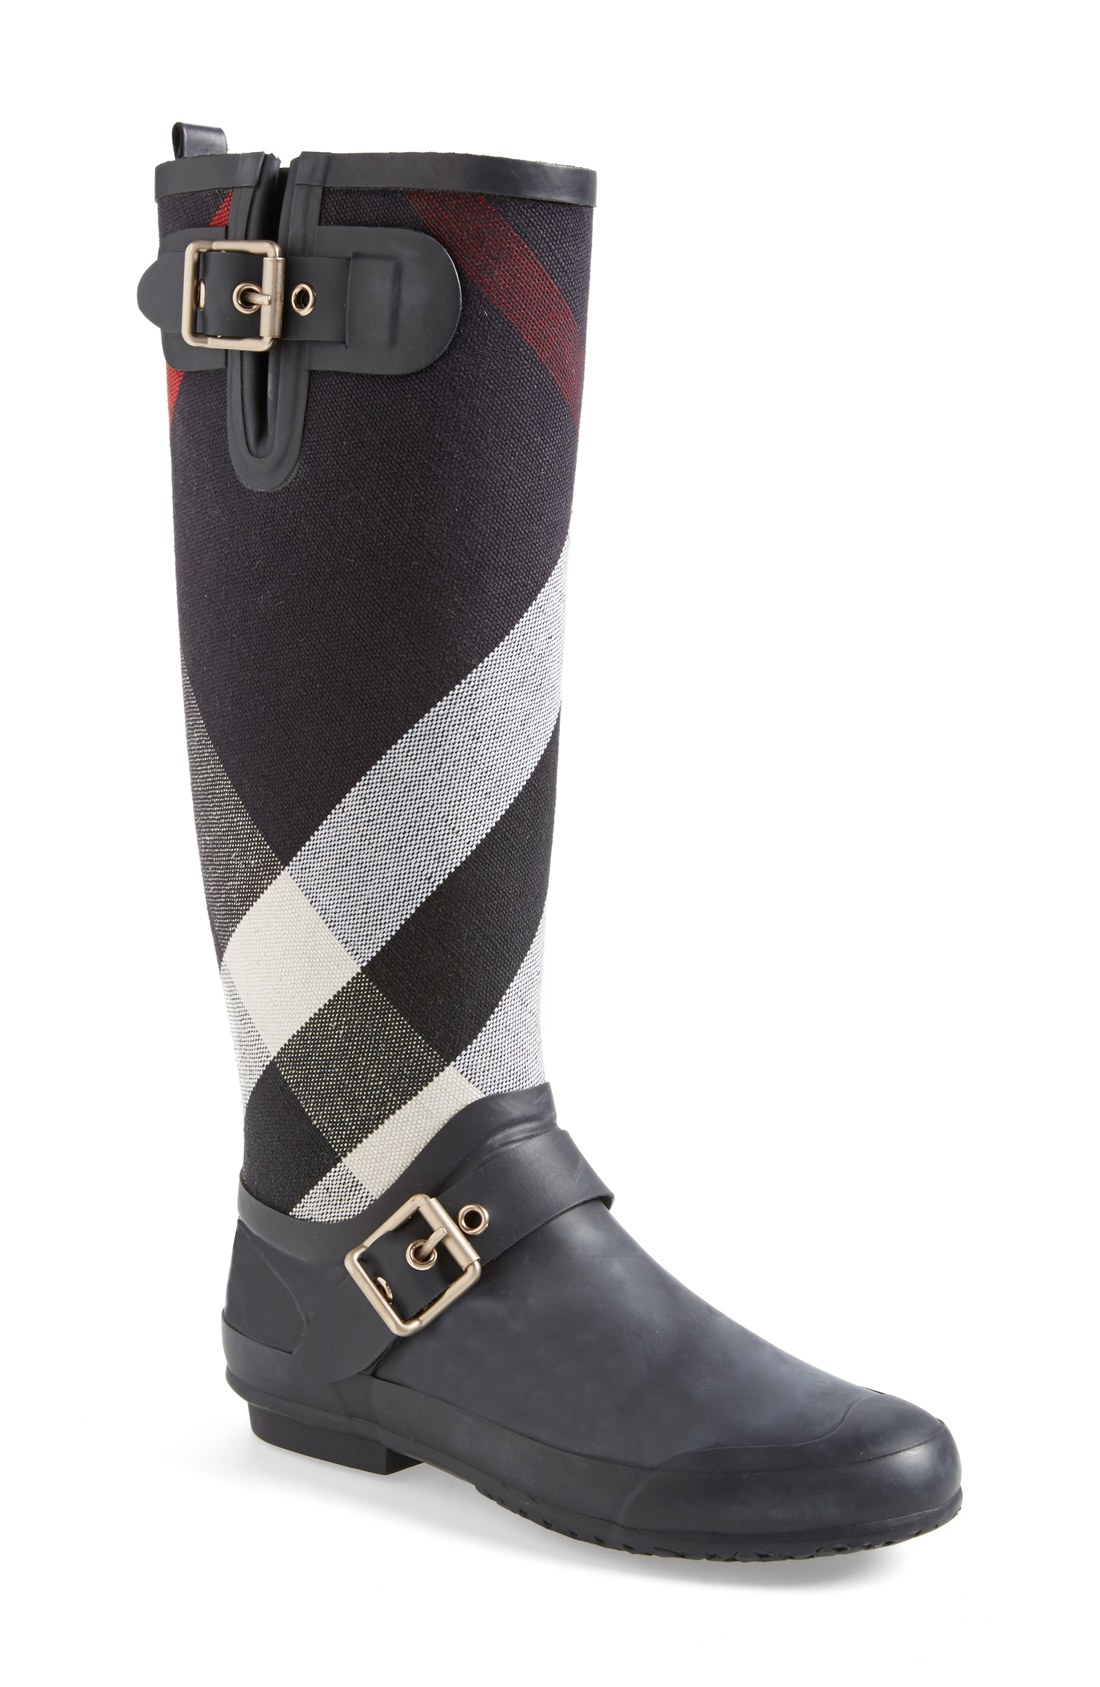 Wide Calf Rain Boots For Women bQixkG70